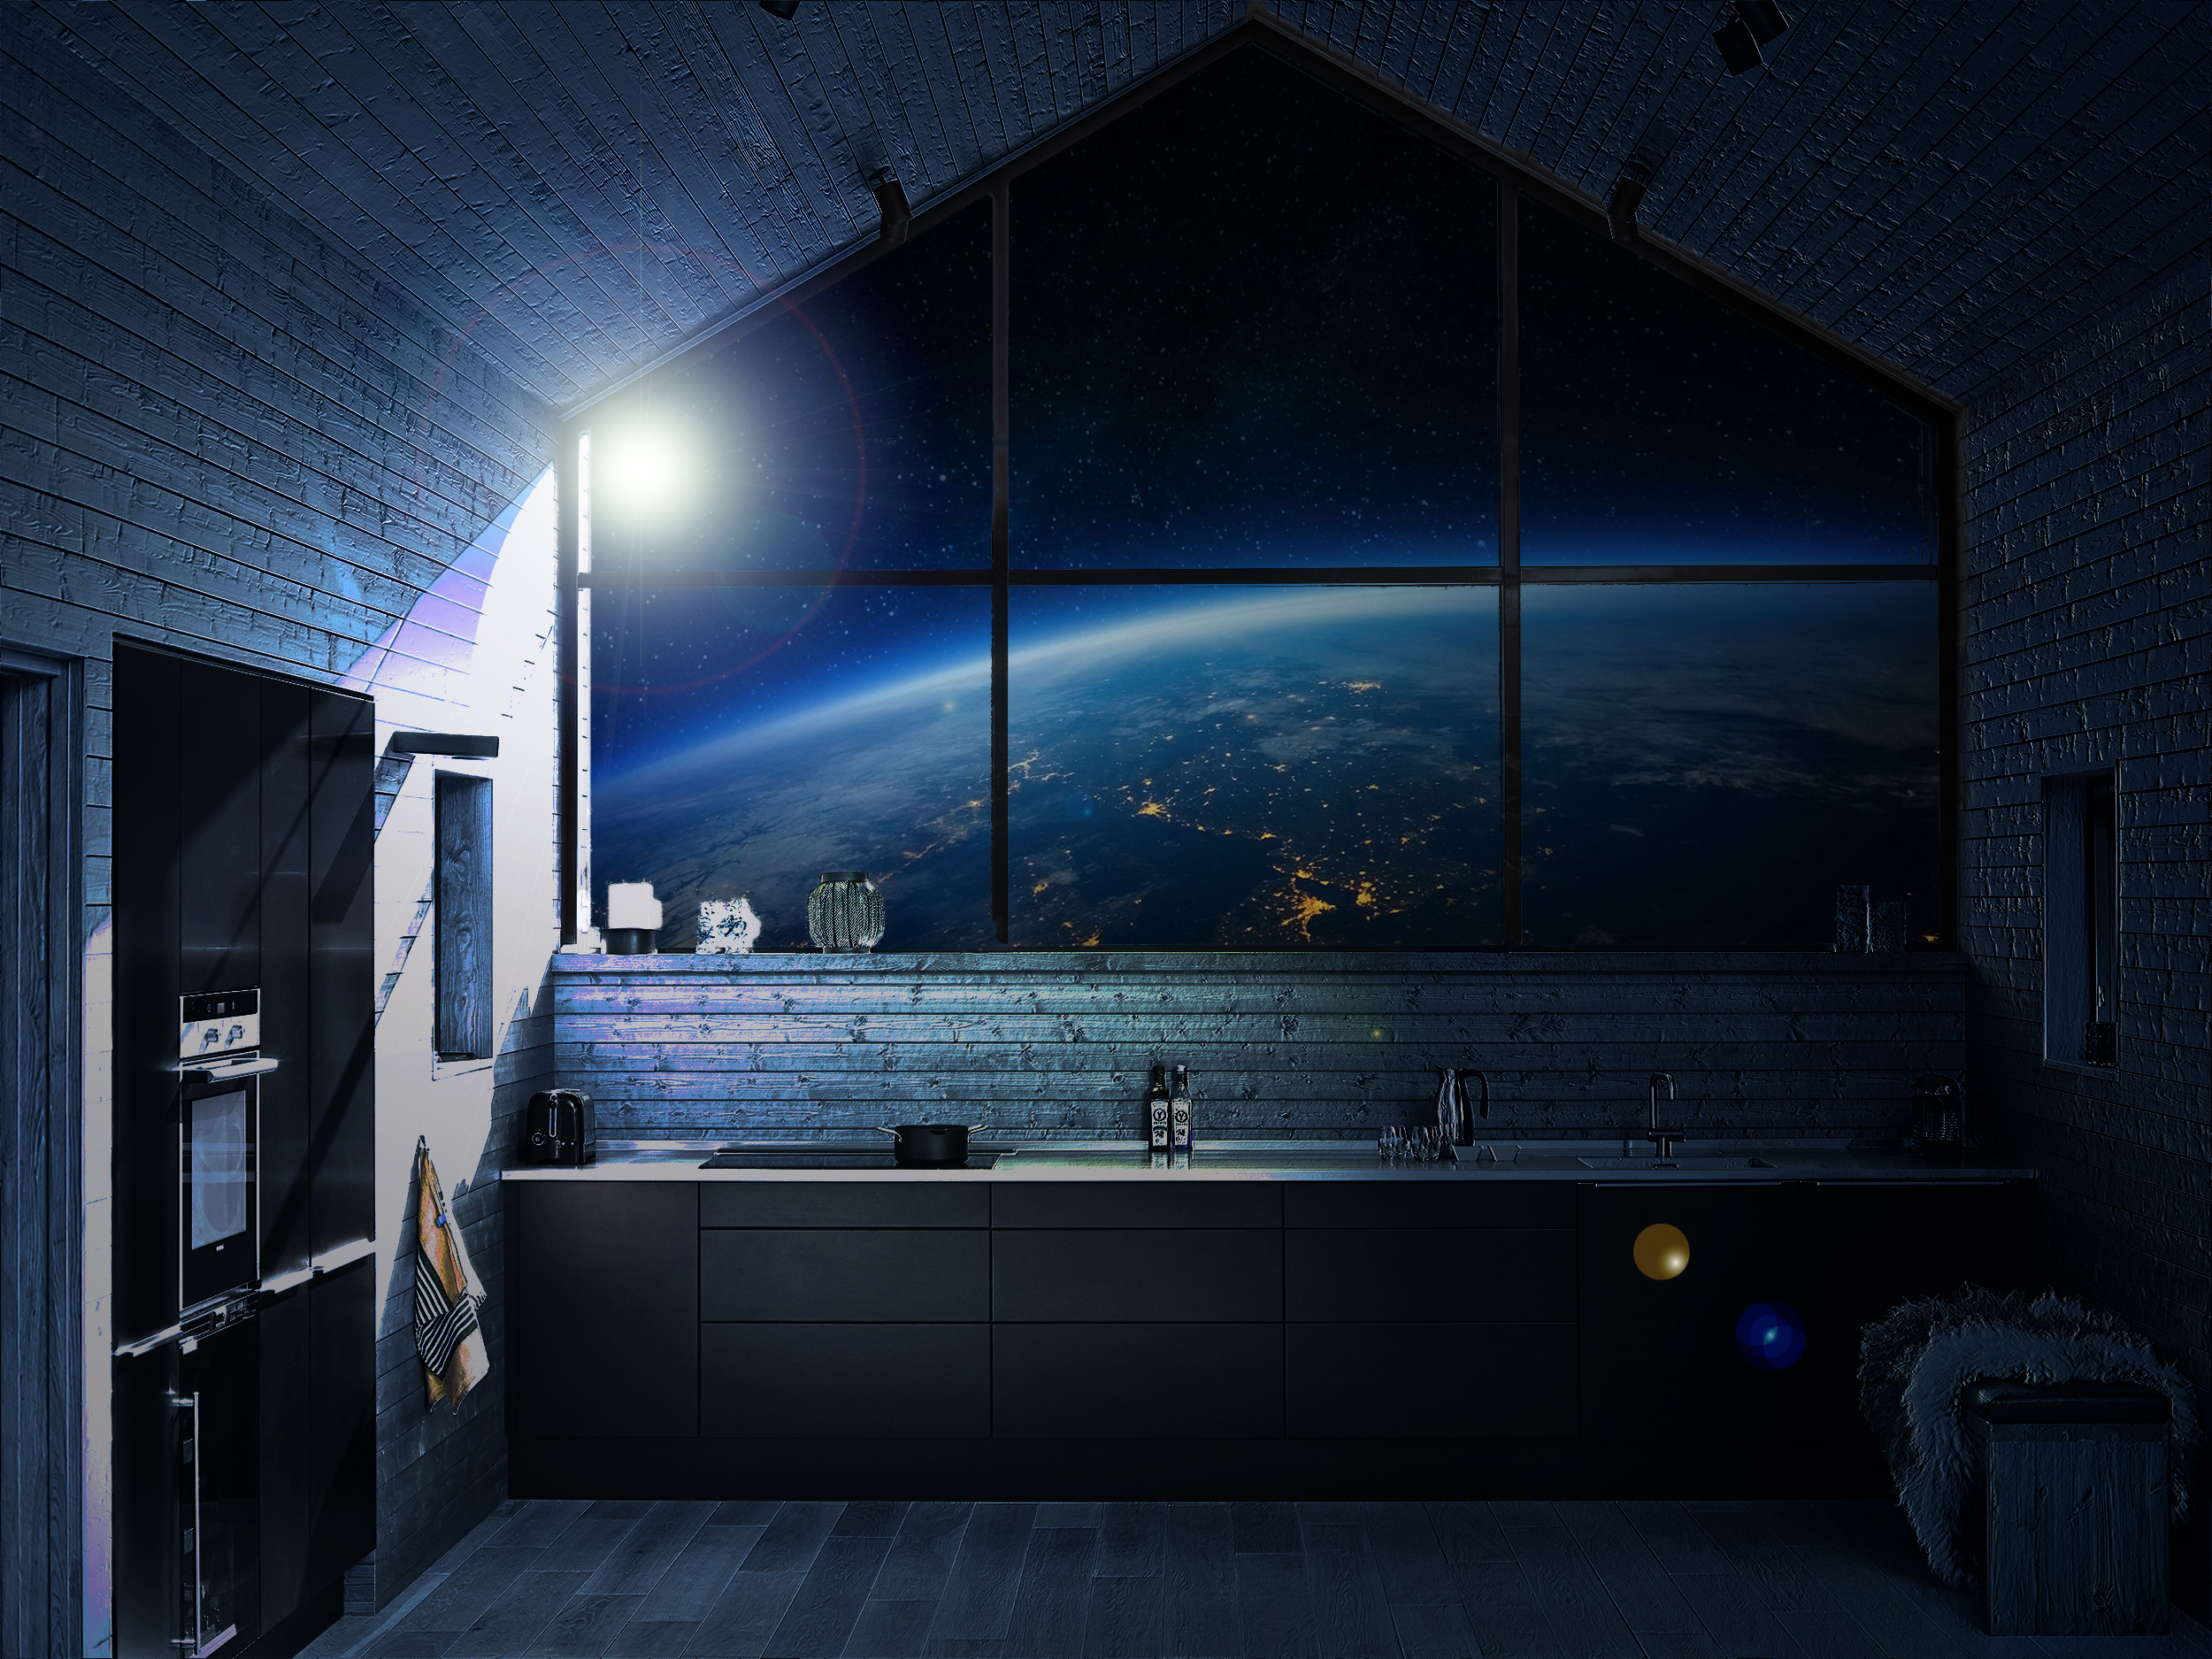 General 2500x1875 space room Earth